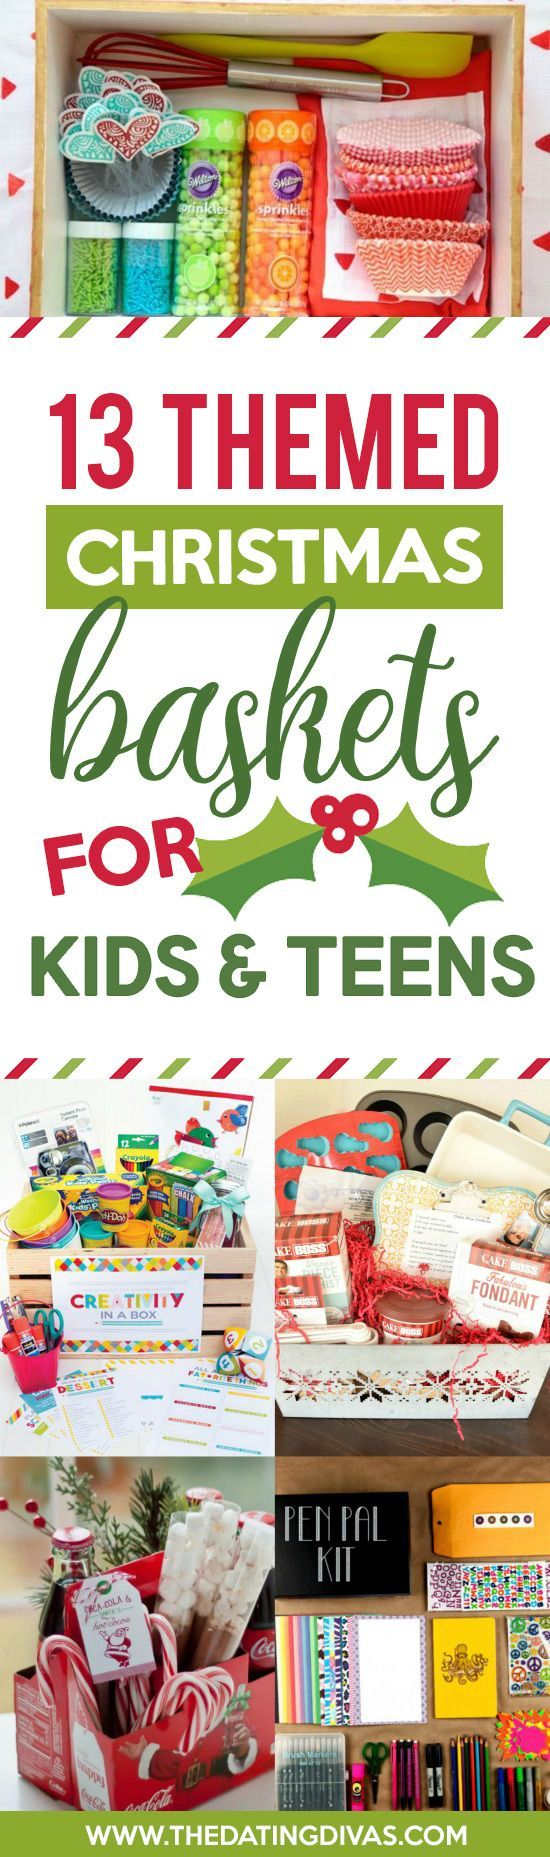 Themed Christmas Gift Baskets for Kids and Teens